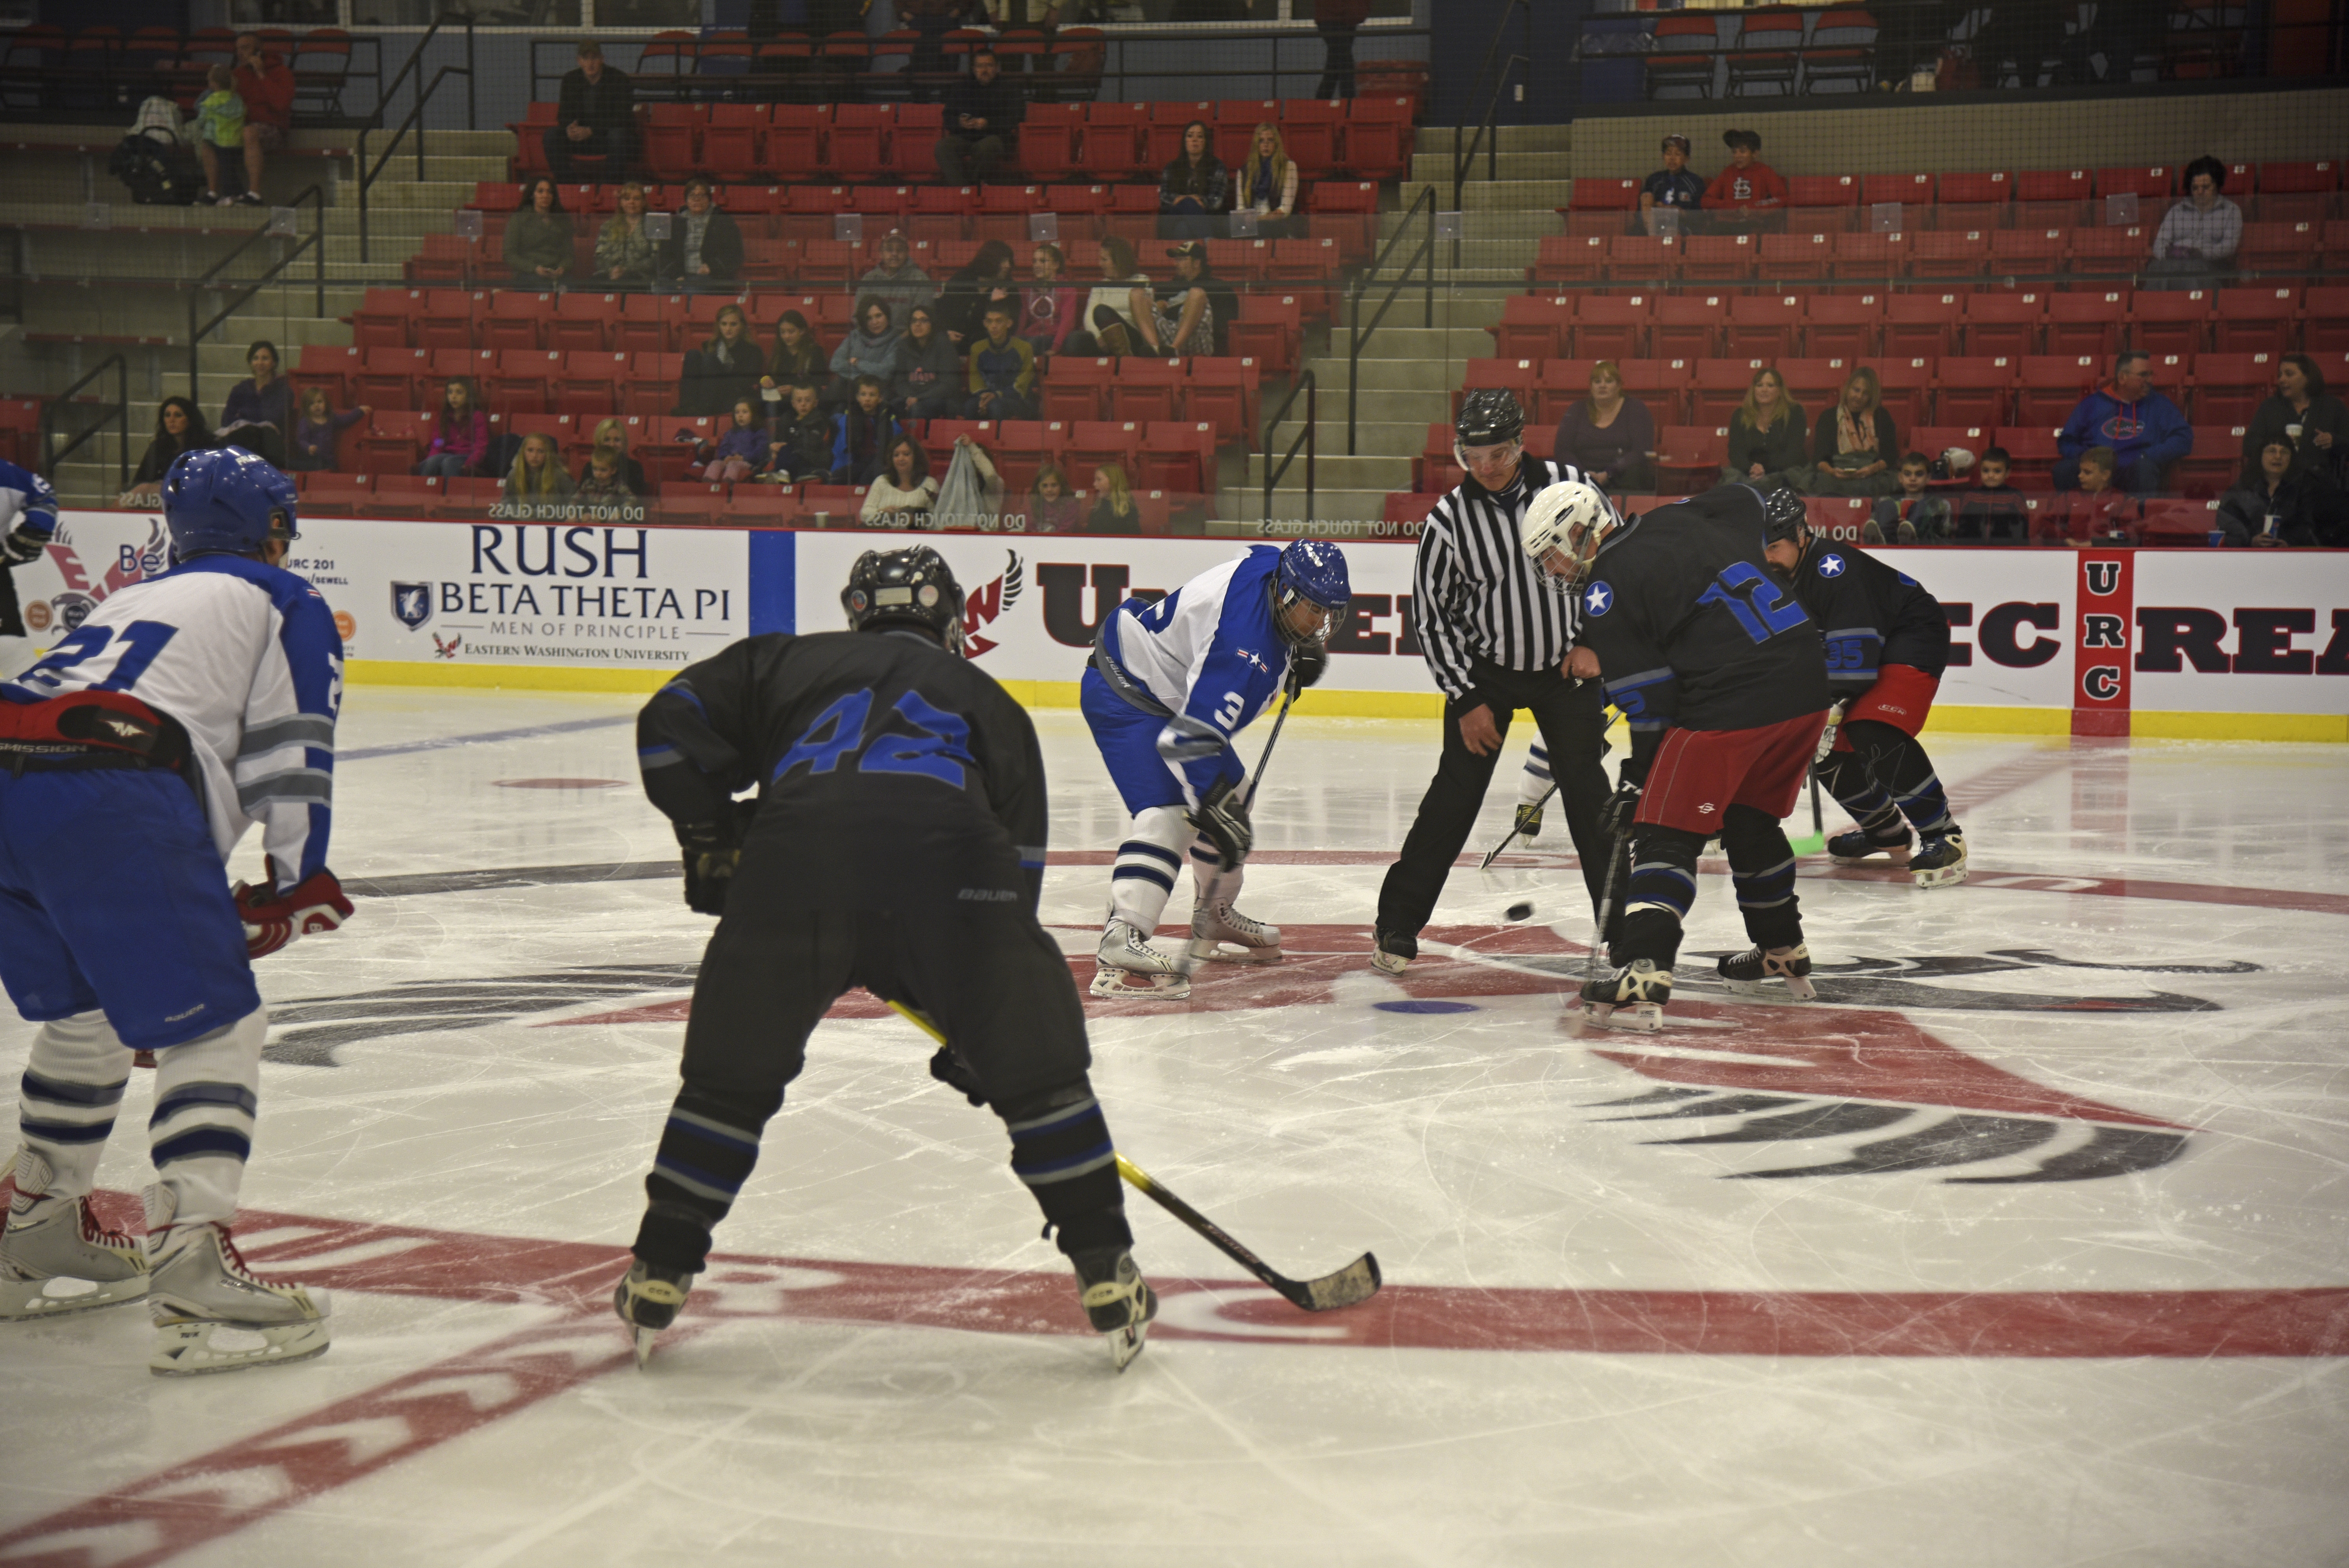 File:Game time 151023-F-DL164-091 jpg - Wikimedia Commons